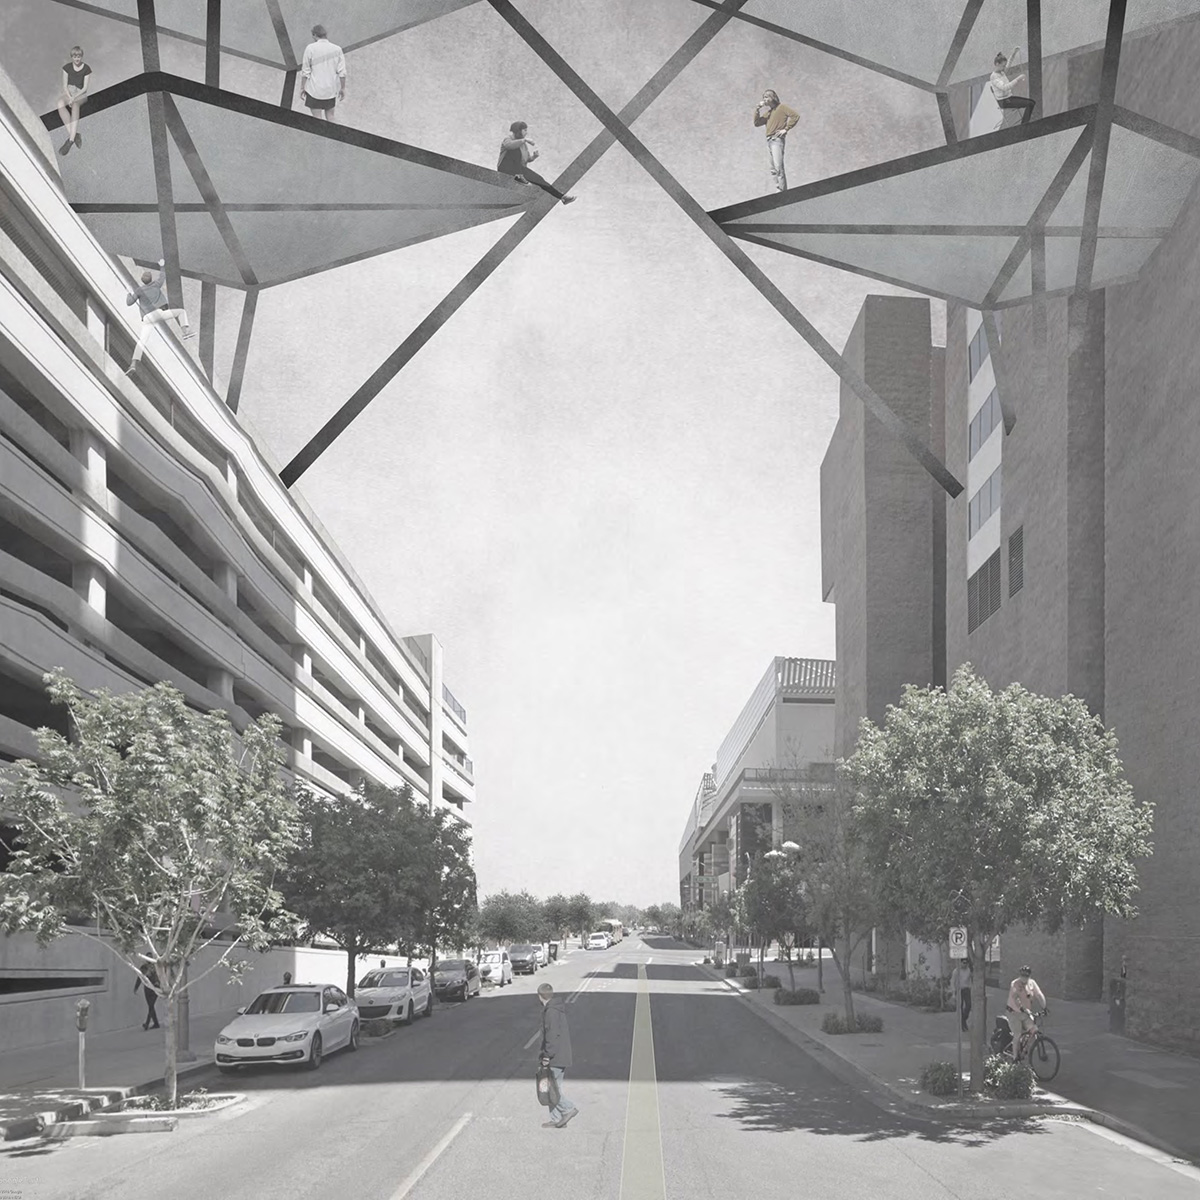 Street perspective showing a typical Phoenix street with new volumes beginning to connect above by student Brennan Richards